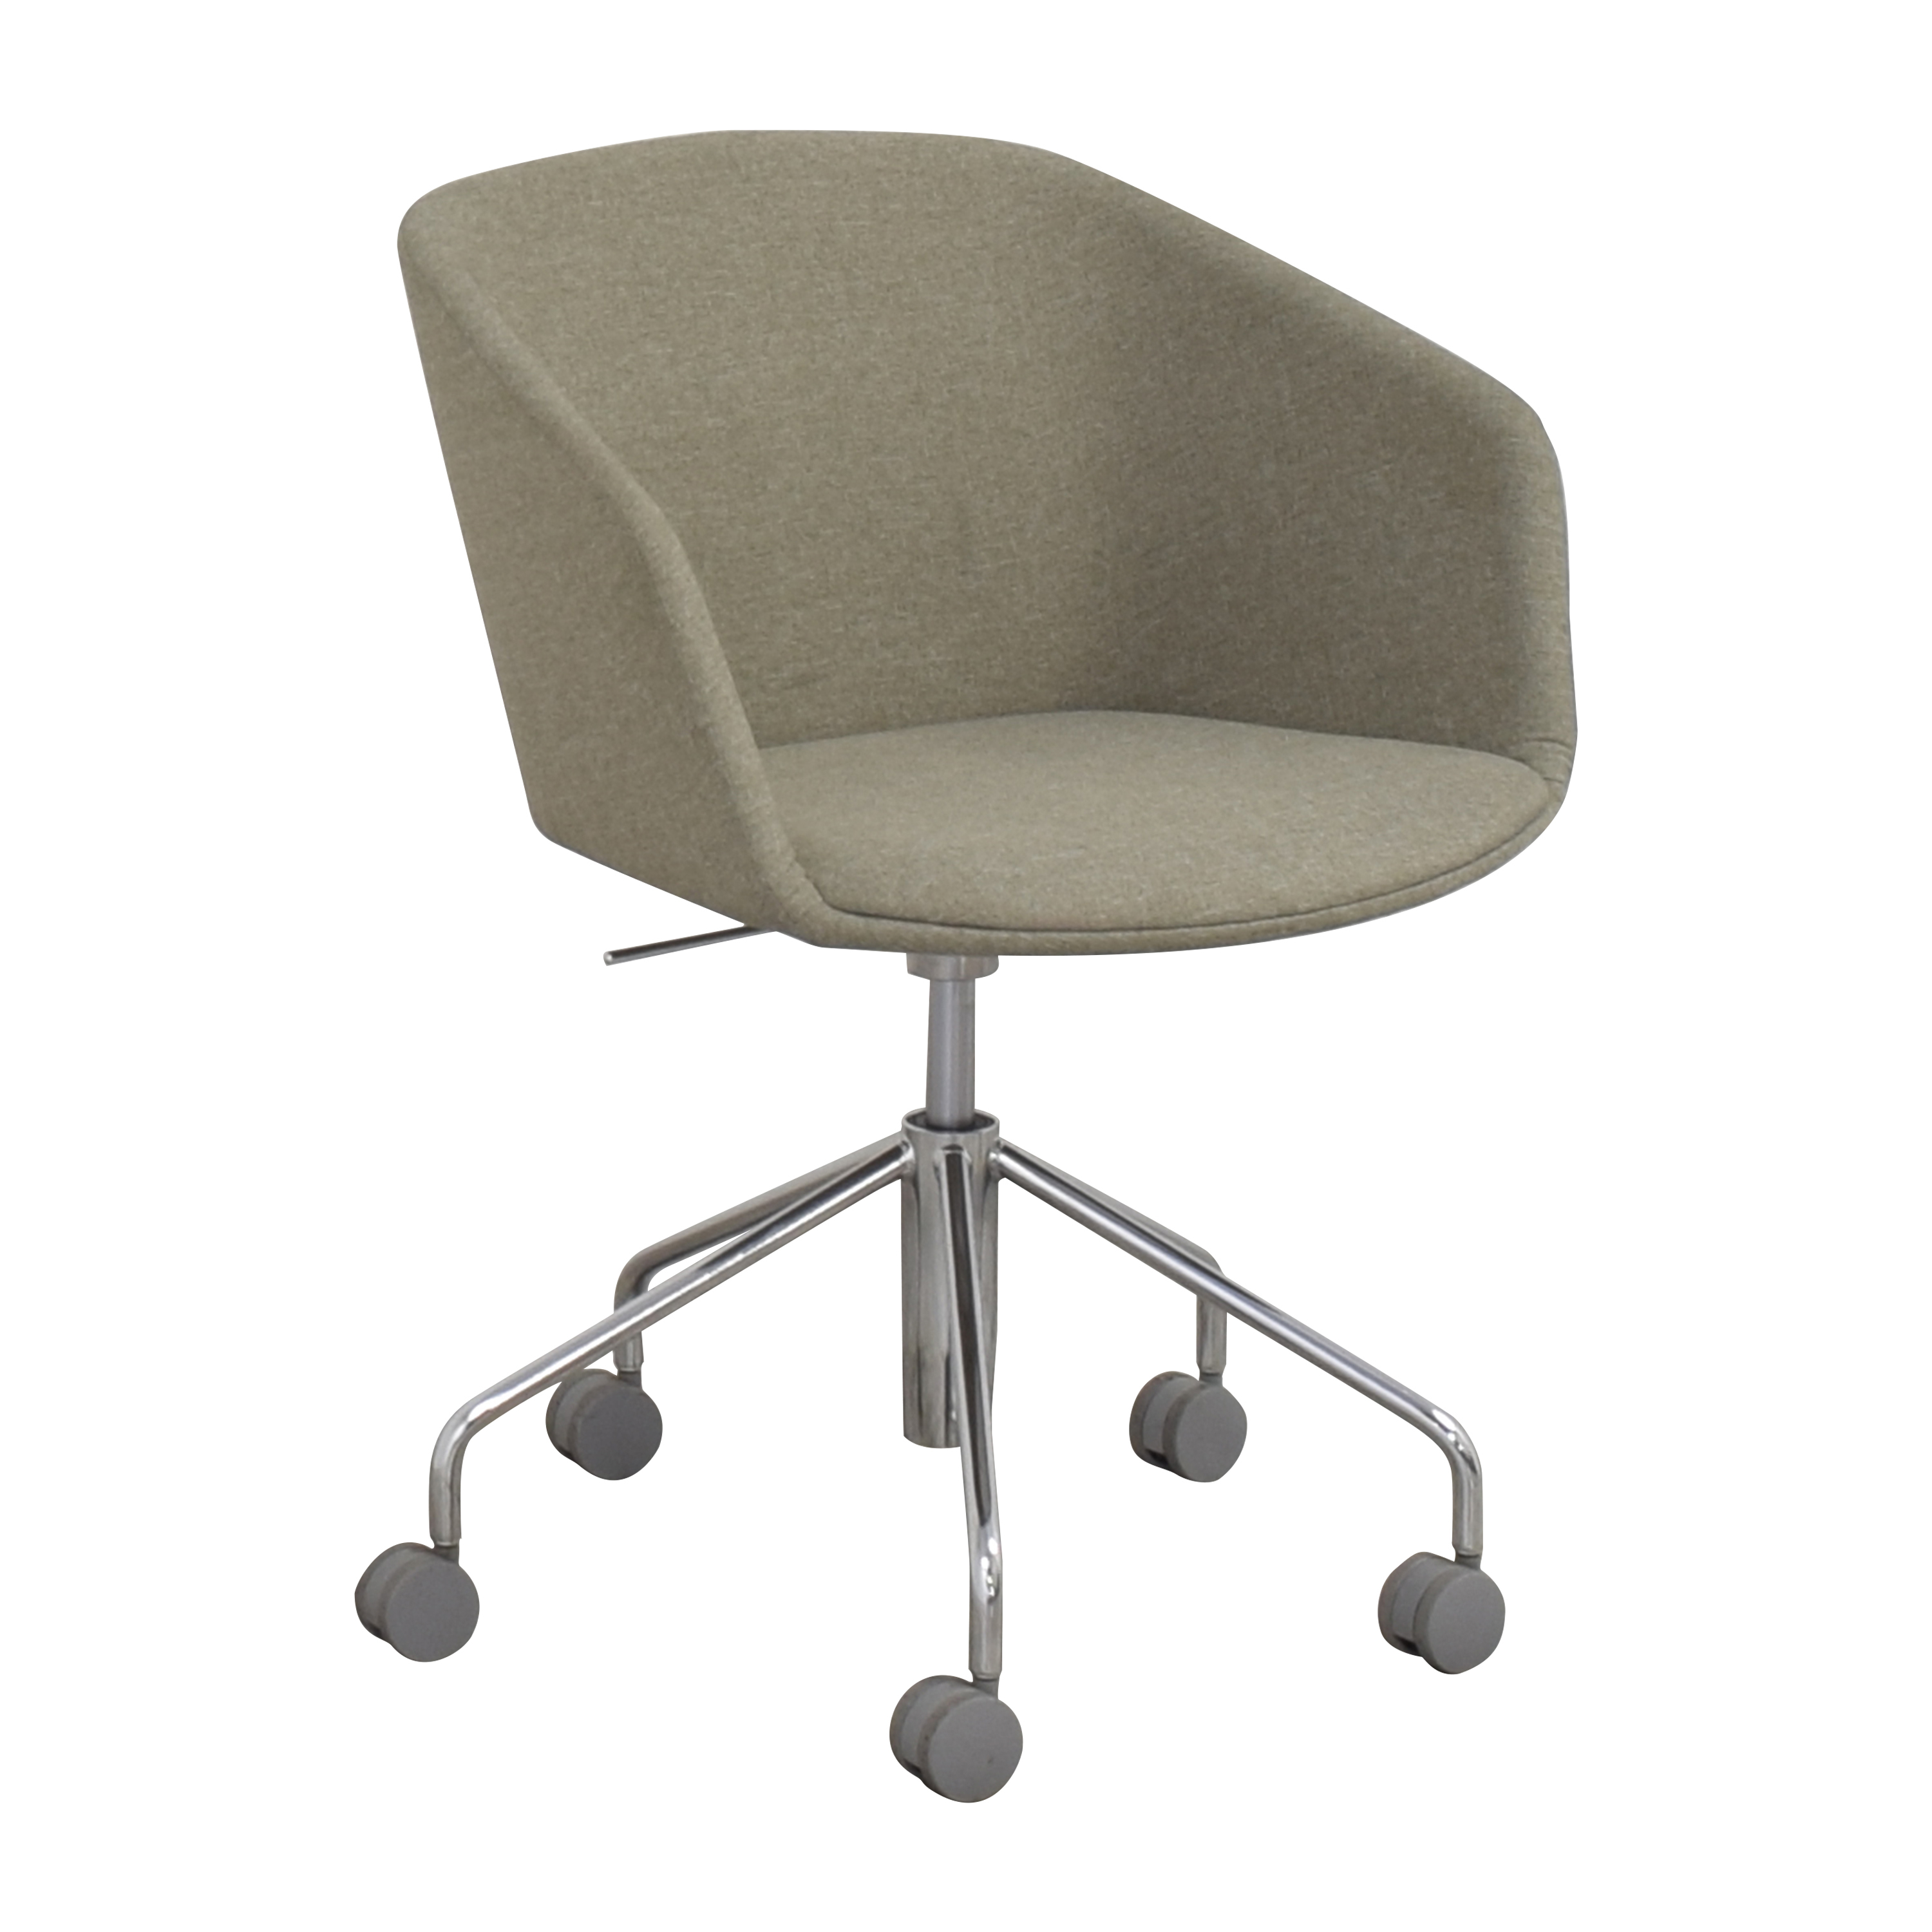 Poppin Poppin Pitch Meeting Chair Home Office Chairs